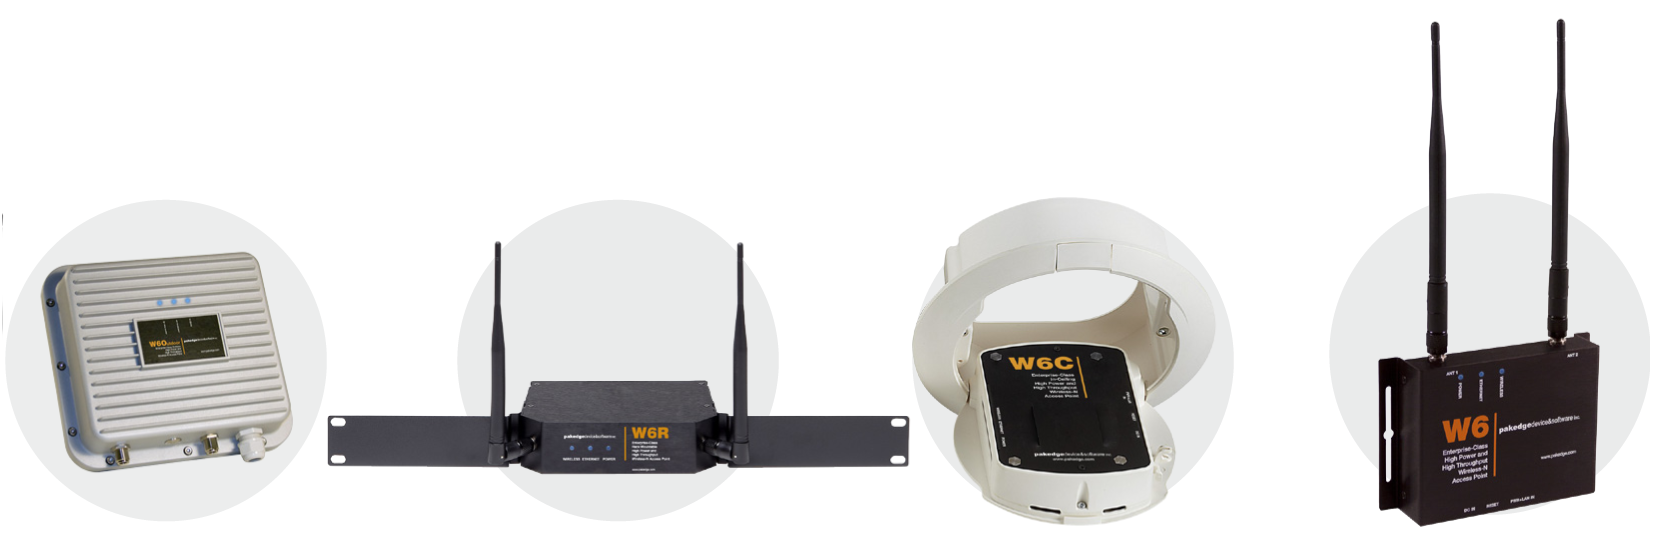 All form-factors of our W6 access points. From left to right: W6O outdoor, W6R rackmount, W6C ceiling, and W6 desktop.